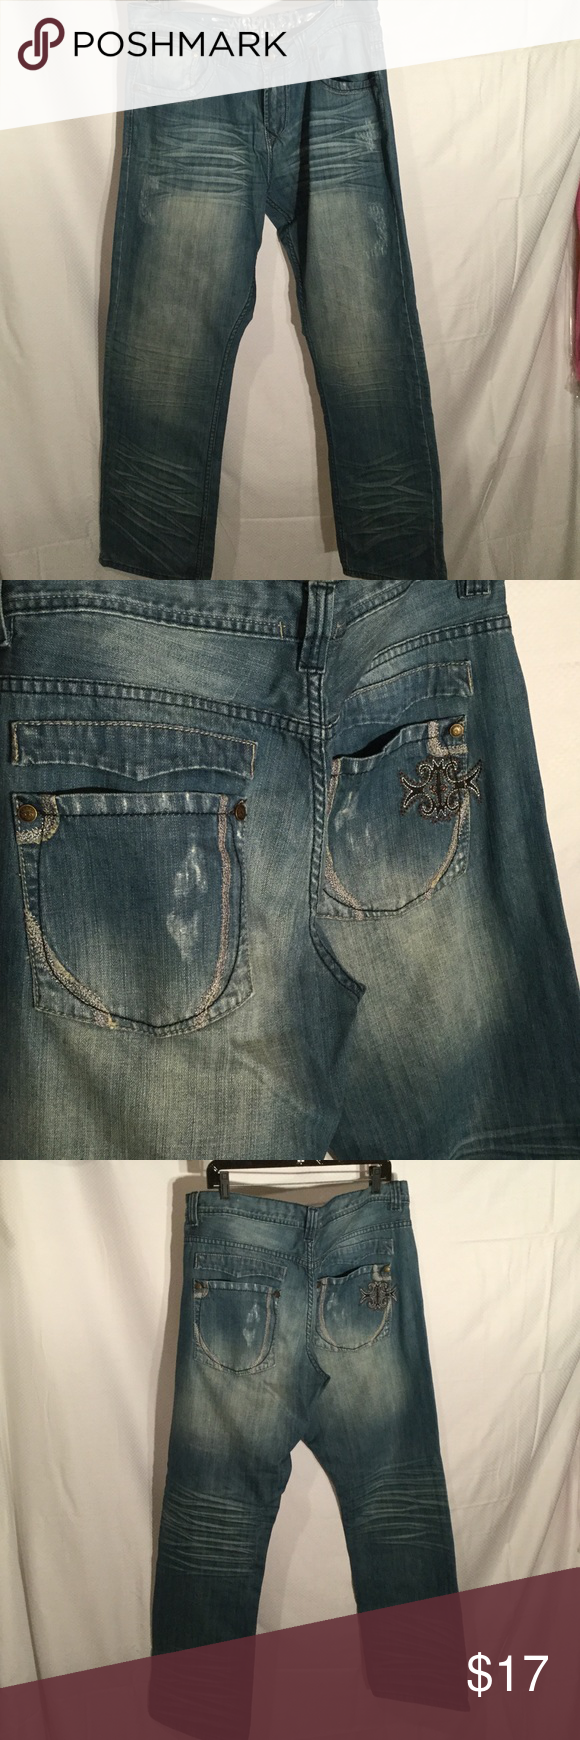 Hybrid & co denim jenas 36x32 Hybrid and co blue denim jeans 36x32 and in perfect condition never worn hybrid & co Jeans Relaxed